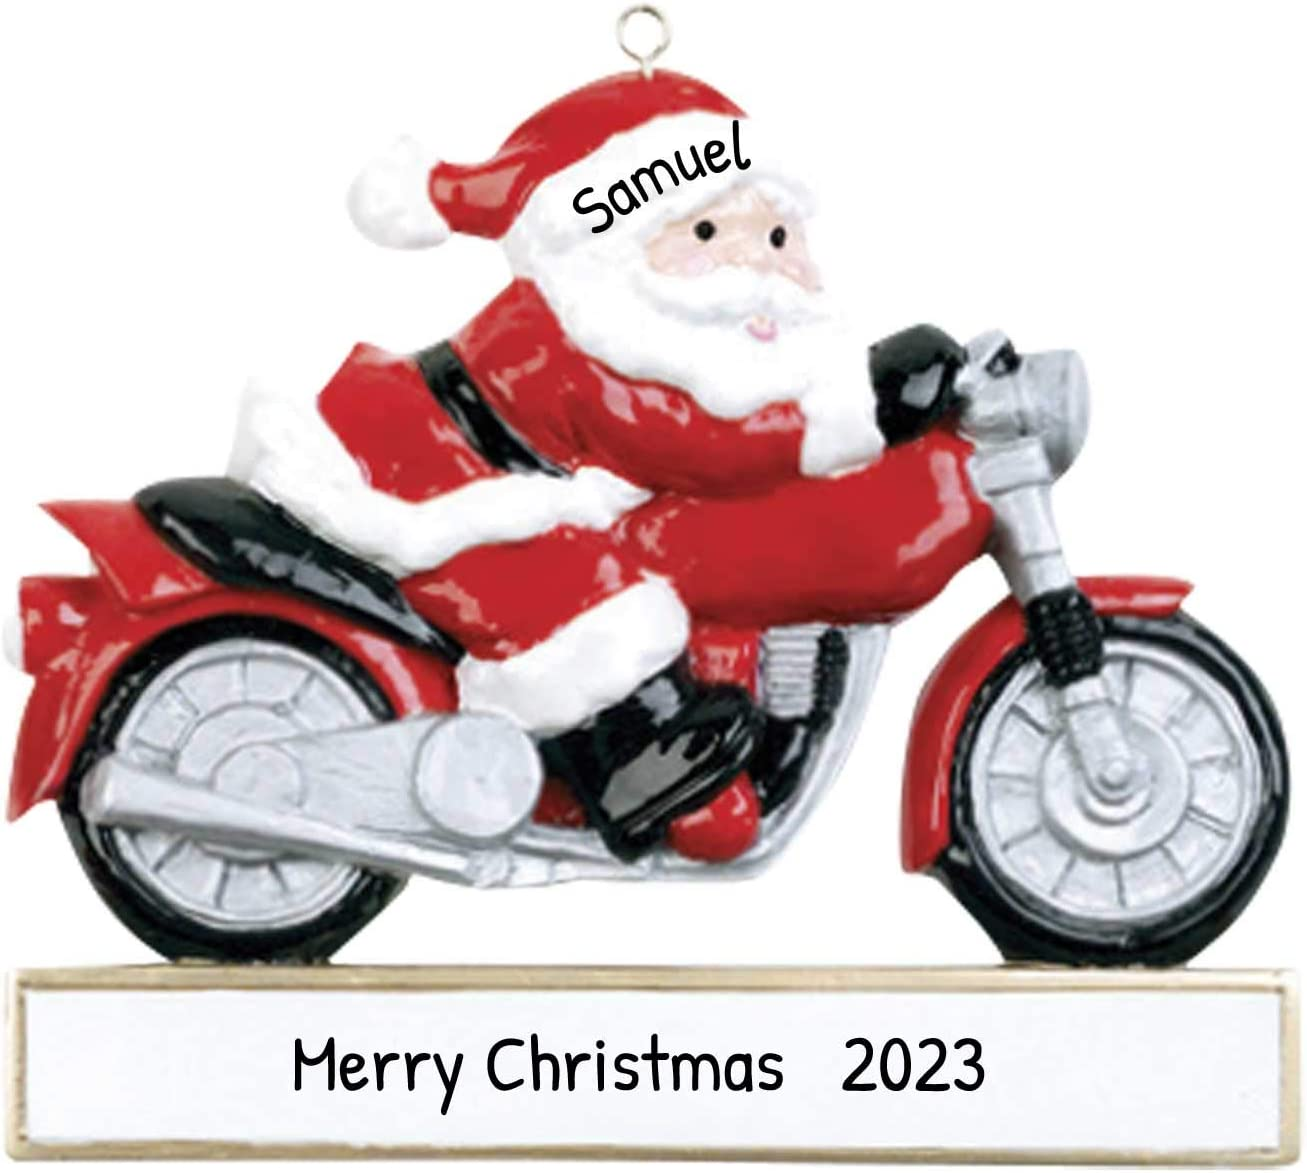 Amazon Com Personalized Motorcycle Christmas Tree Ornament 2020 Santa Suit Hat Chopper Sport Bike Motorist Papa Claus Cycling Profession Hobby Activity Bicyclist Child Free Customization Kitchen Dining